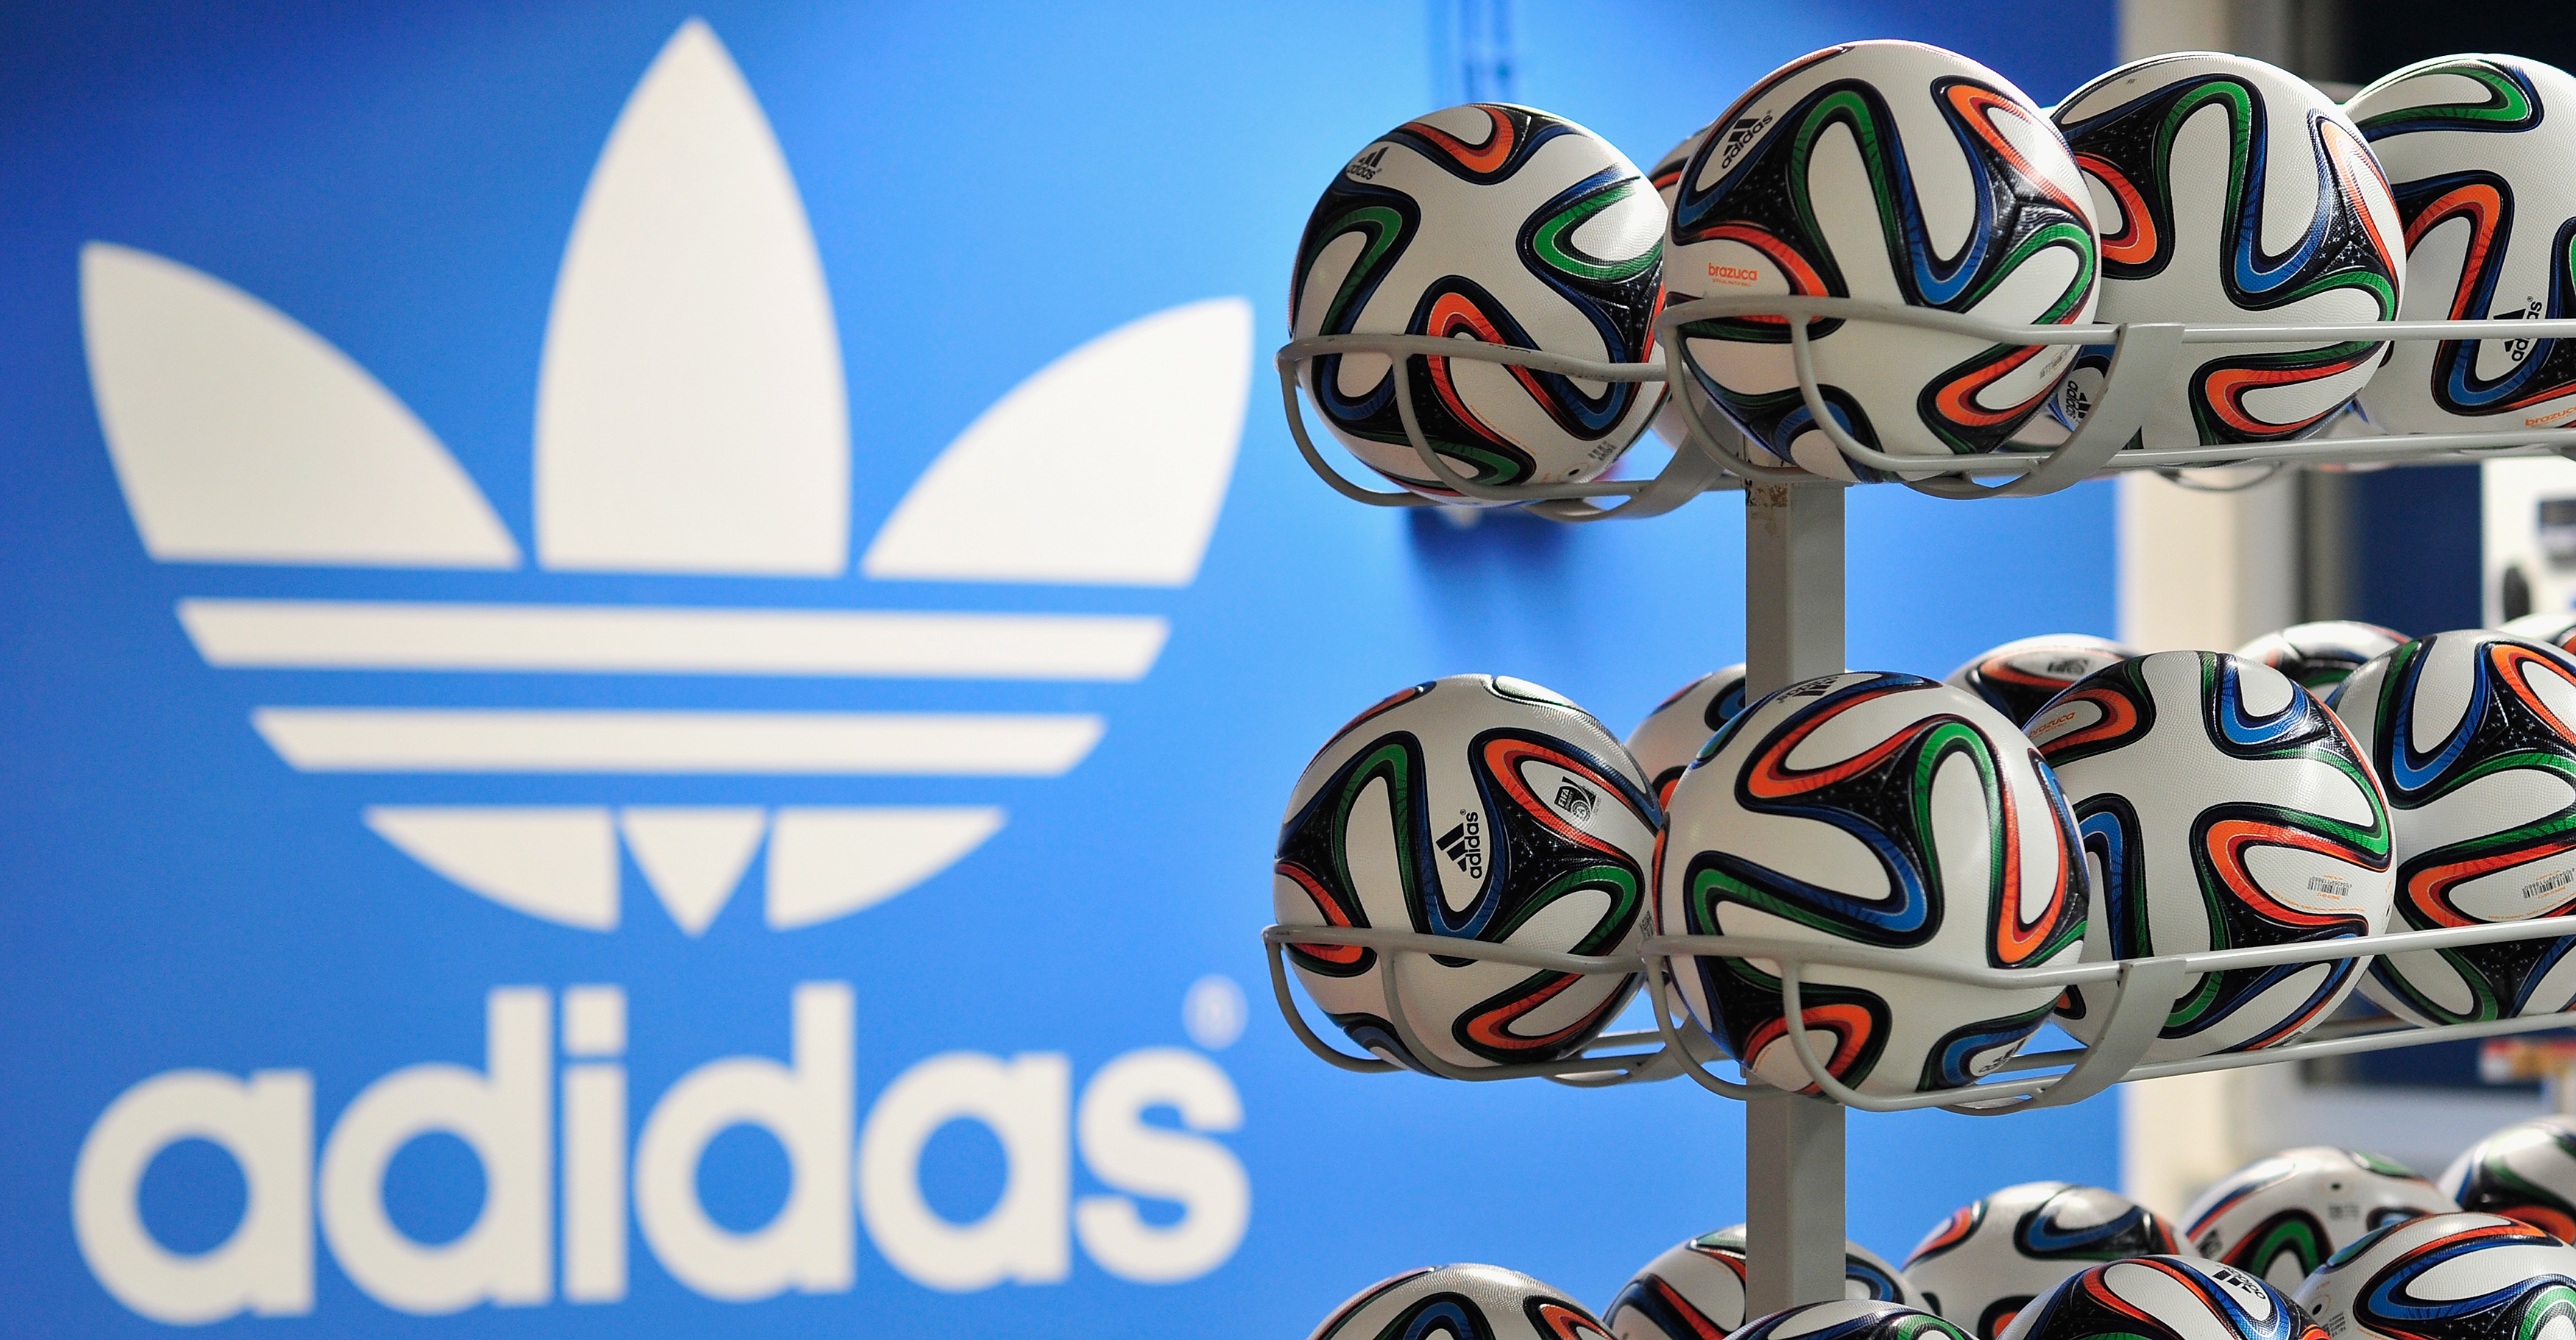 Brazuca match balls for the FIFA World Cup 2014 lie in a rack in front of the adidas logo on December 6, 2013 in Scheinfeld near Herzogenaurach, Germany.